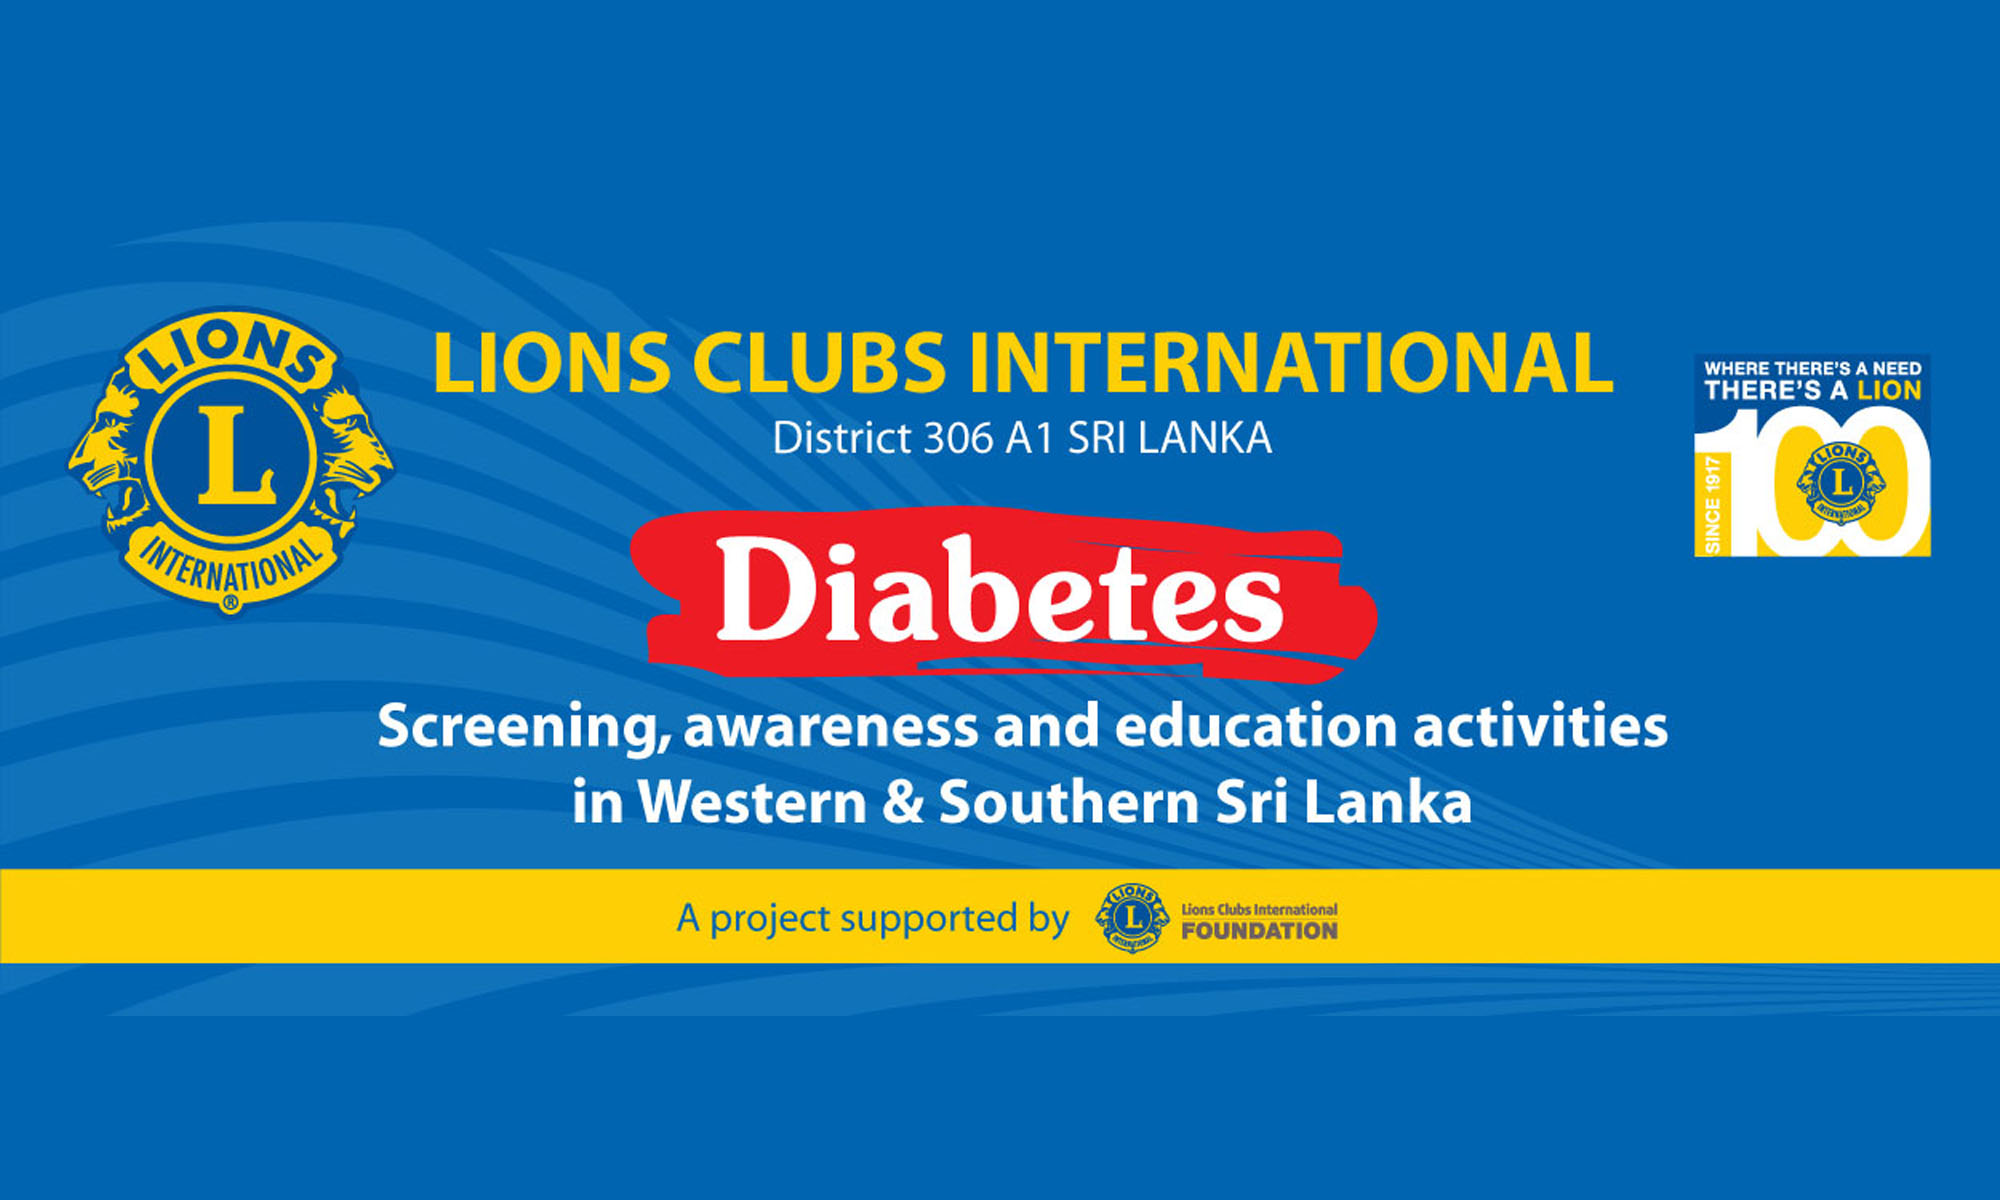 Diabetes – A project supported by Lions Clubs International